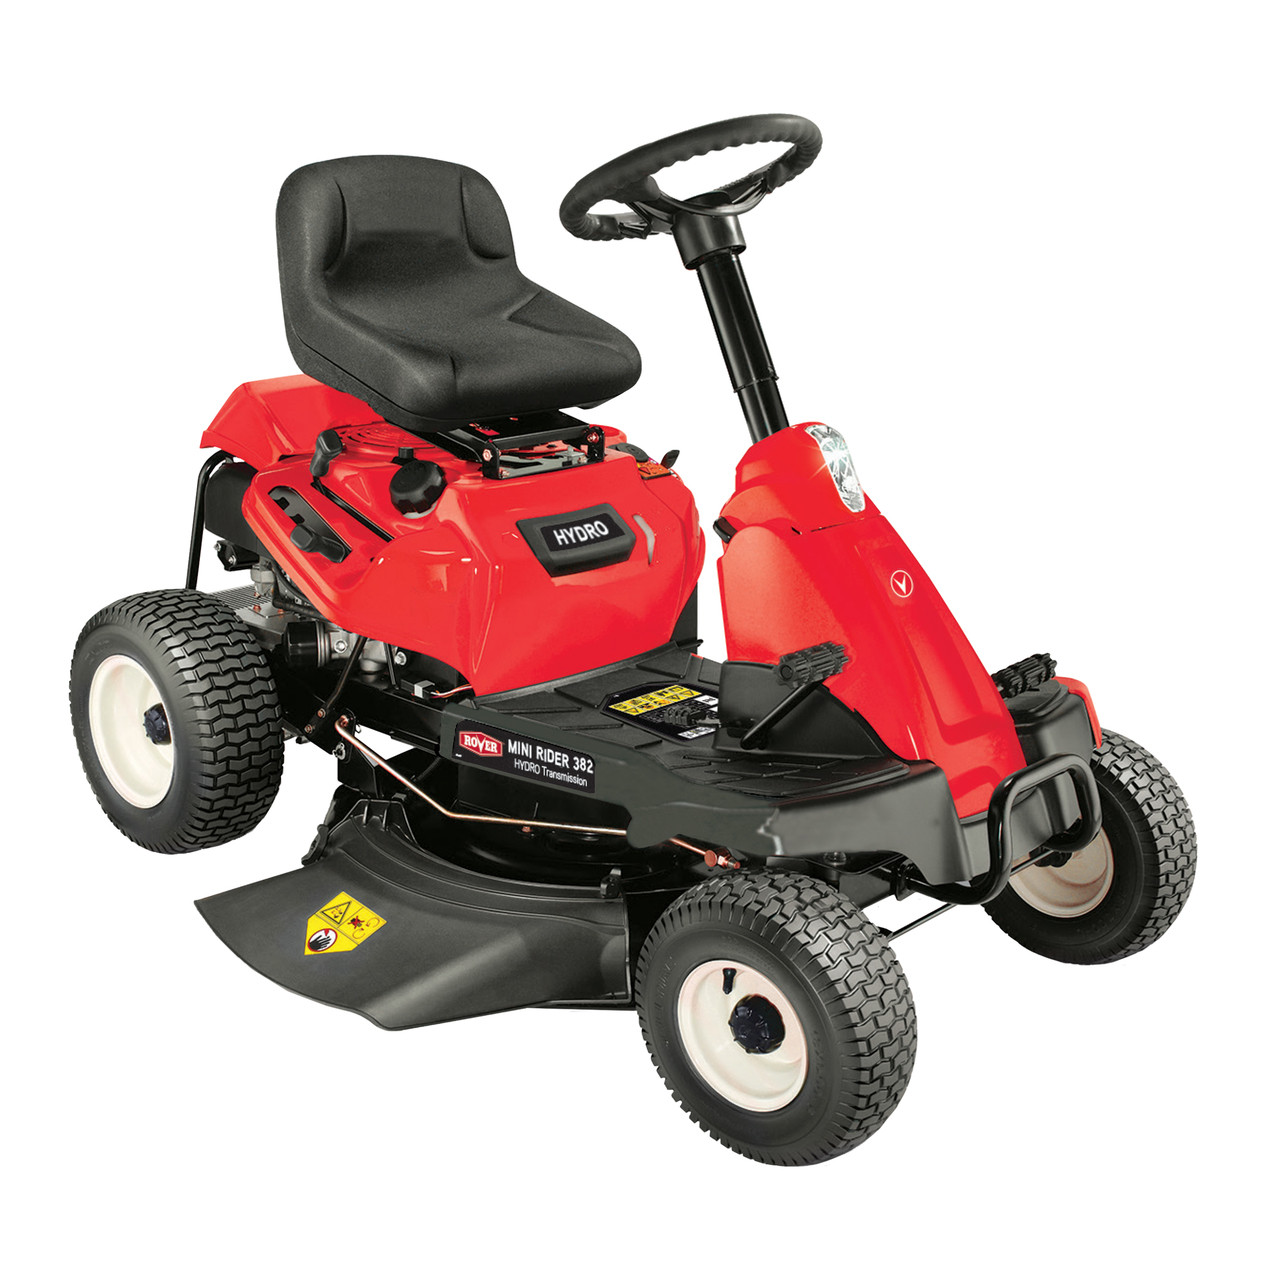 Rover Mini Rider 38230 Hydro Ride On Mower Warehouse Mowers